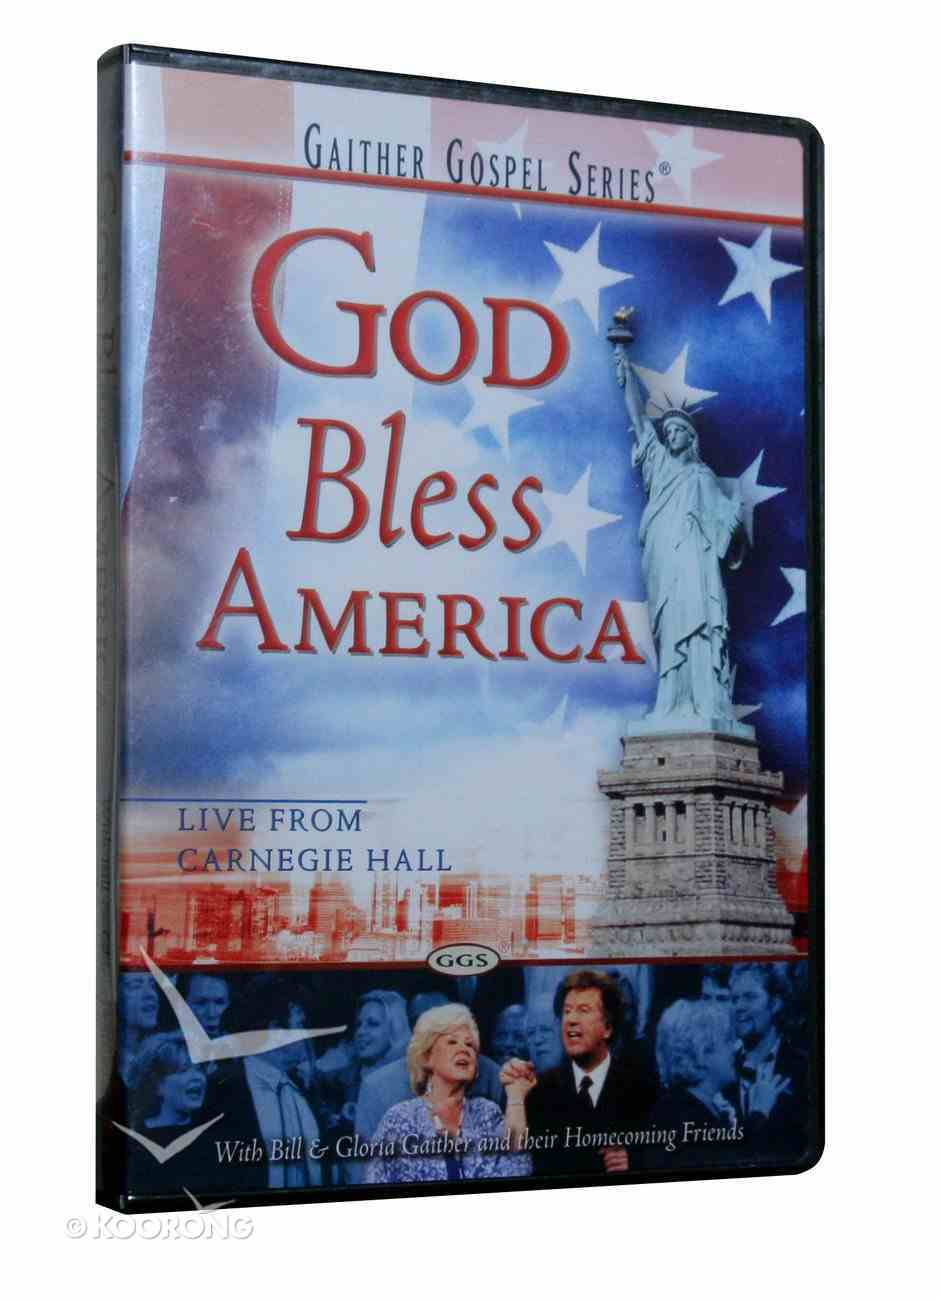 God Bless America (Gaither Gospel Series) DVD